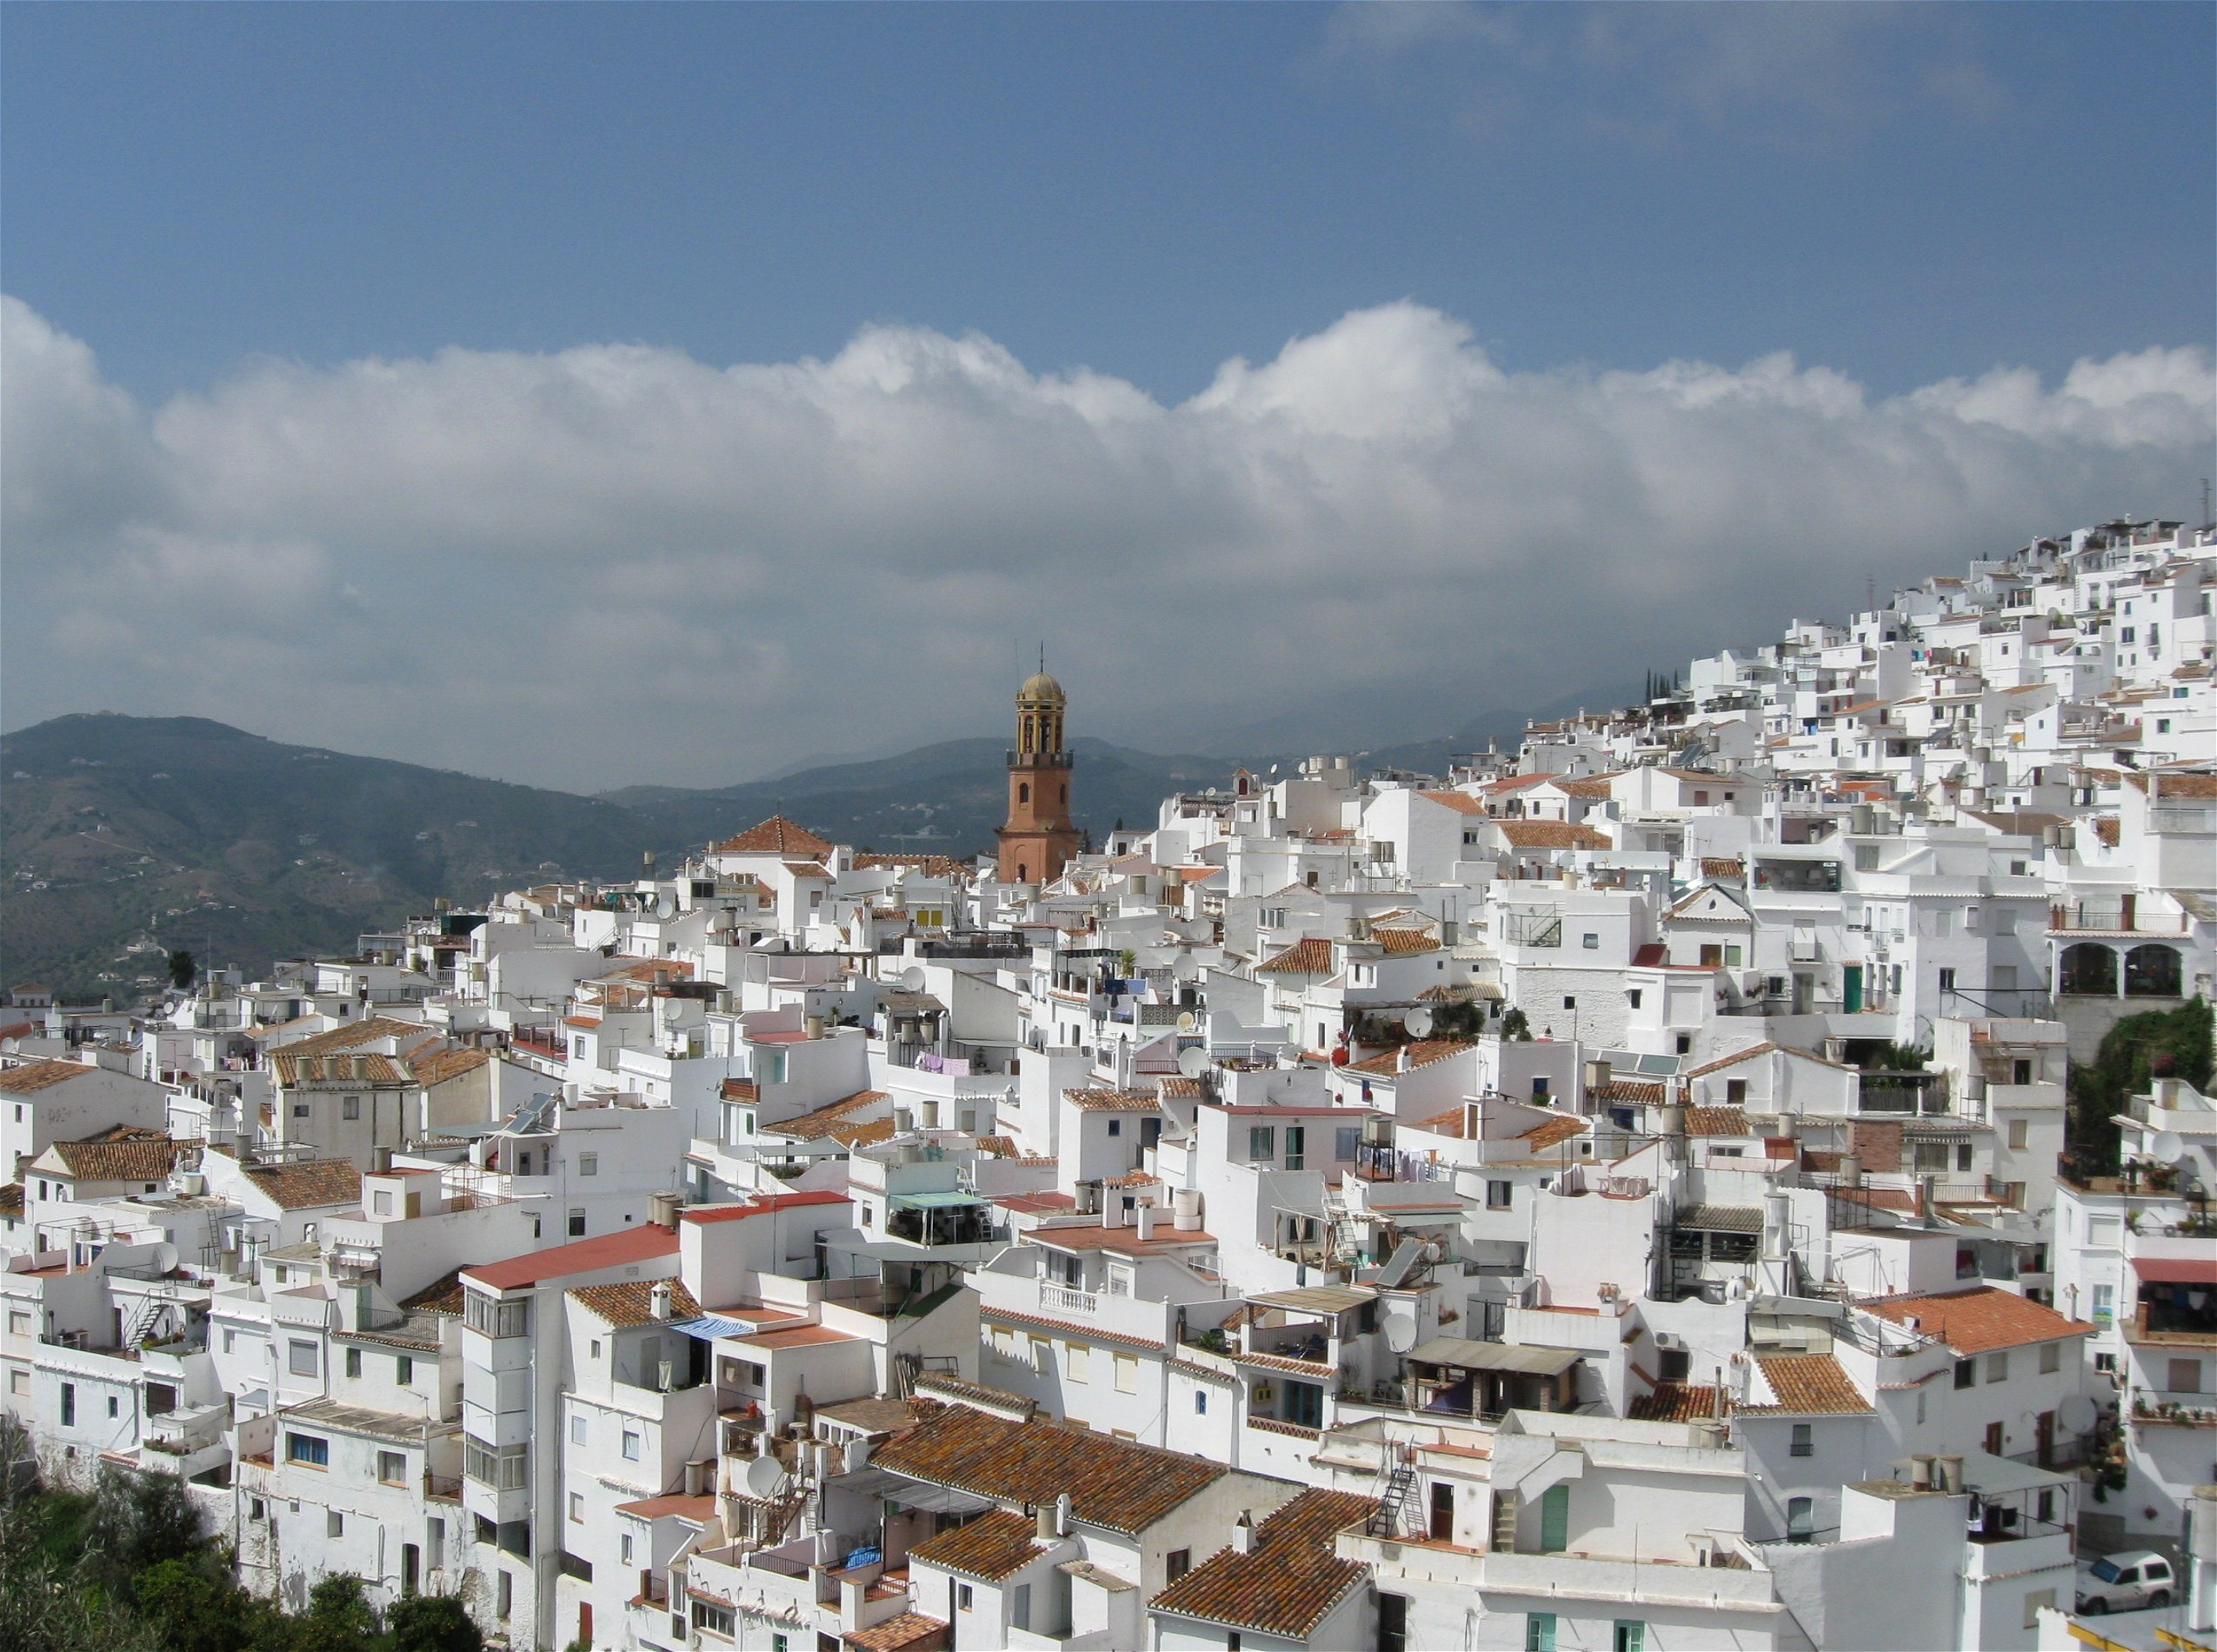 Competa Spain  city photo : Description Competa Malaga 6